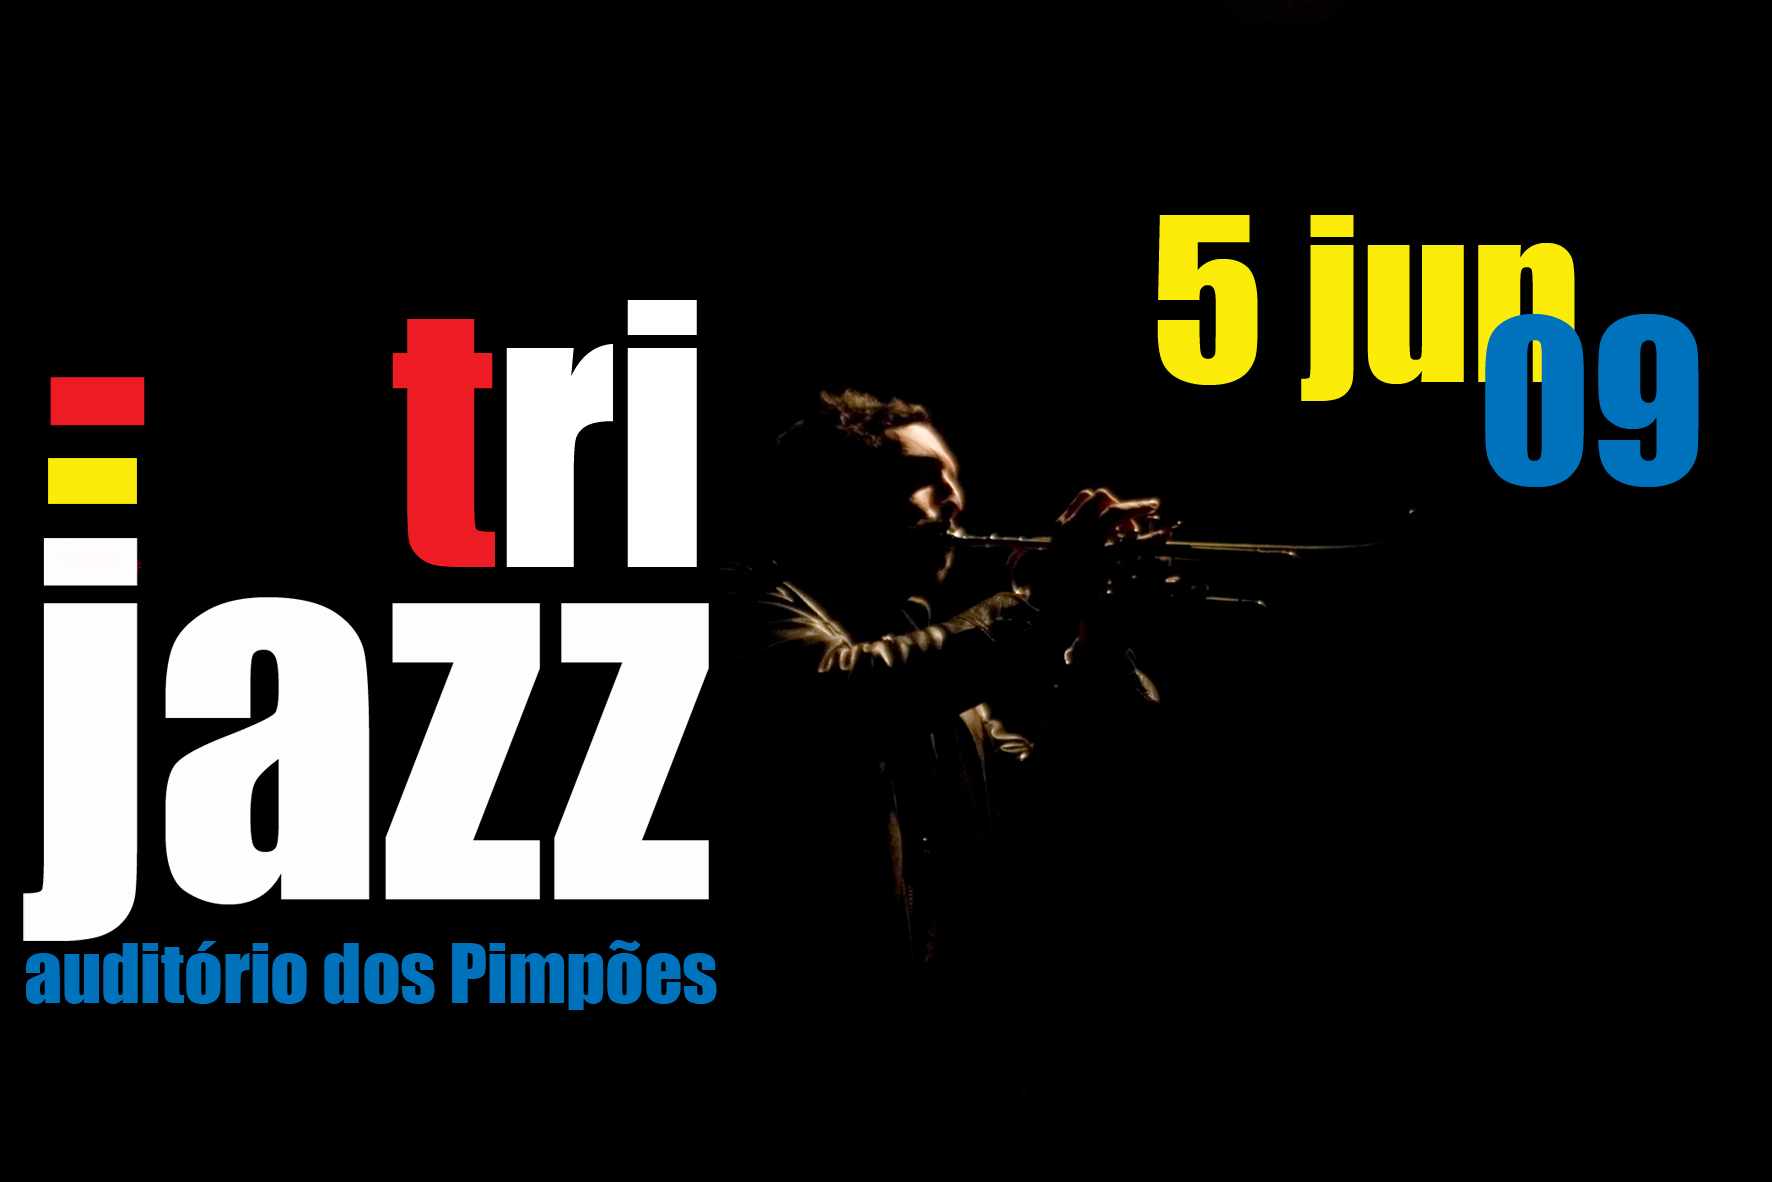 cartaz-trio-jazz-